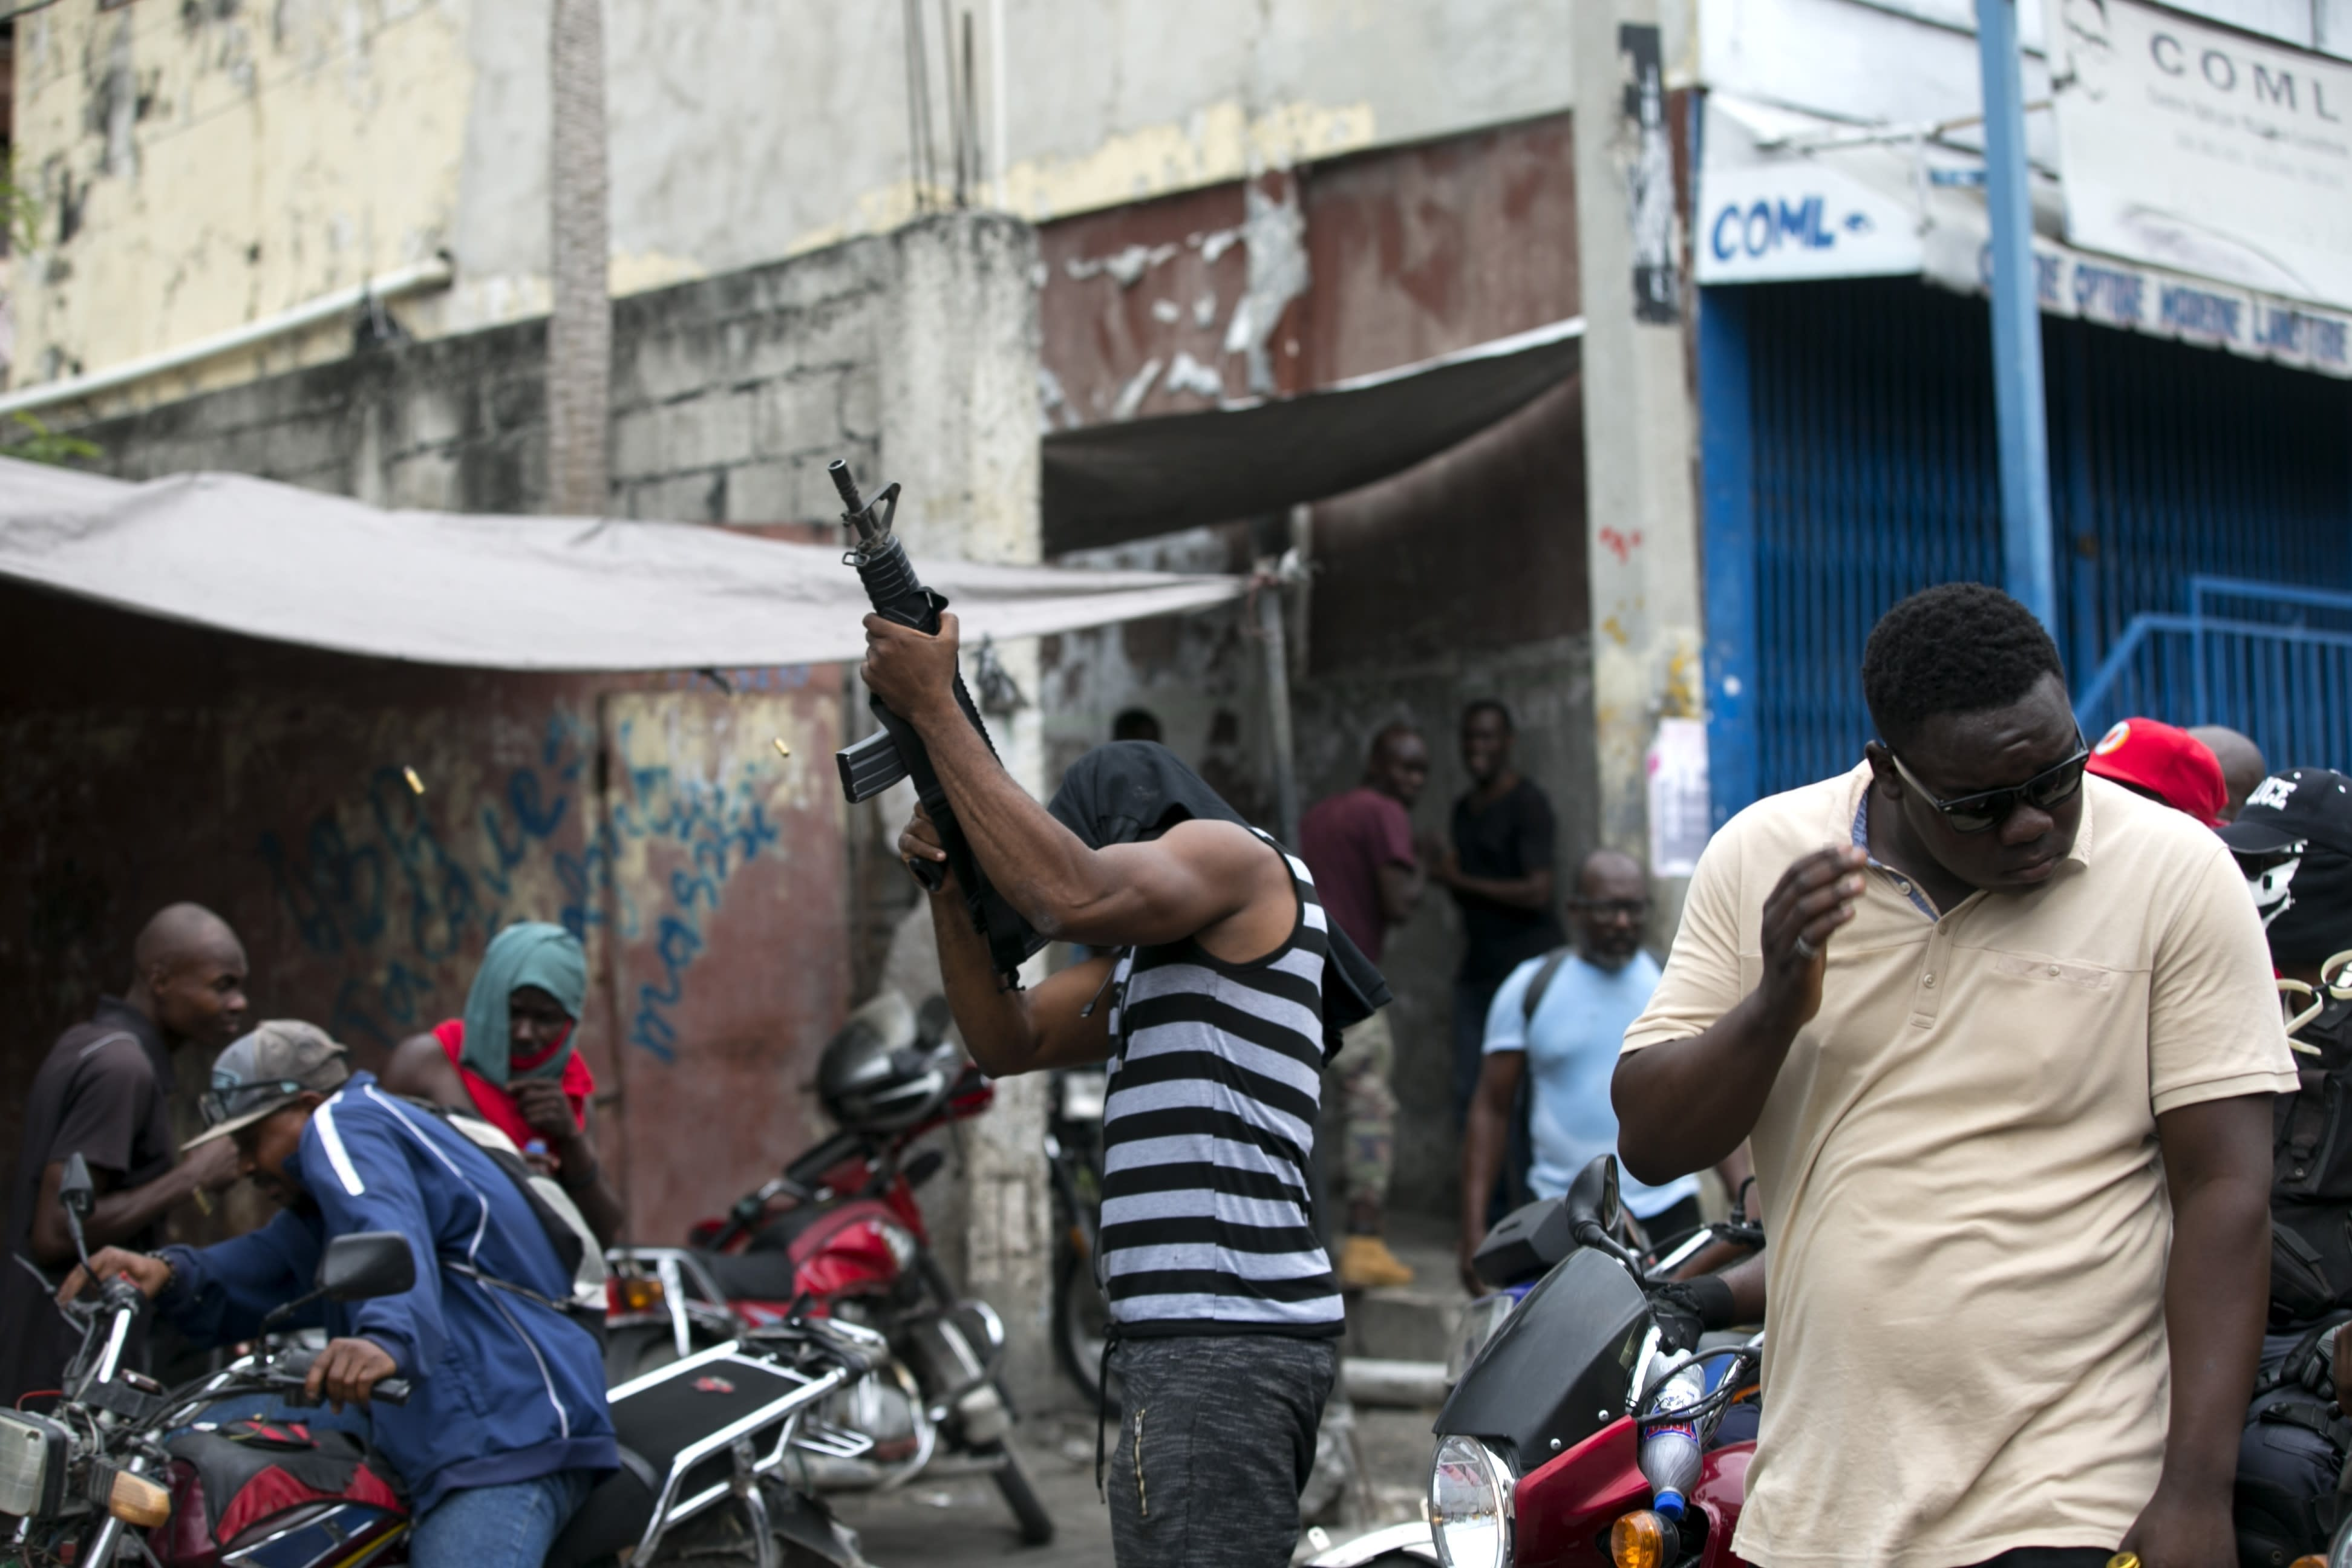 Carnival cancelled, Haiti capital on lockdown after police attack army HQ